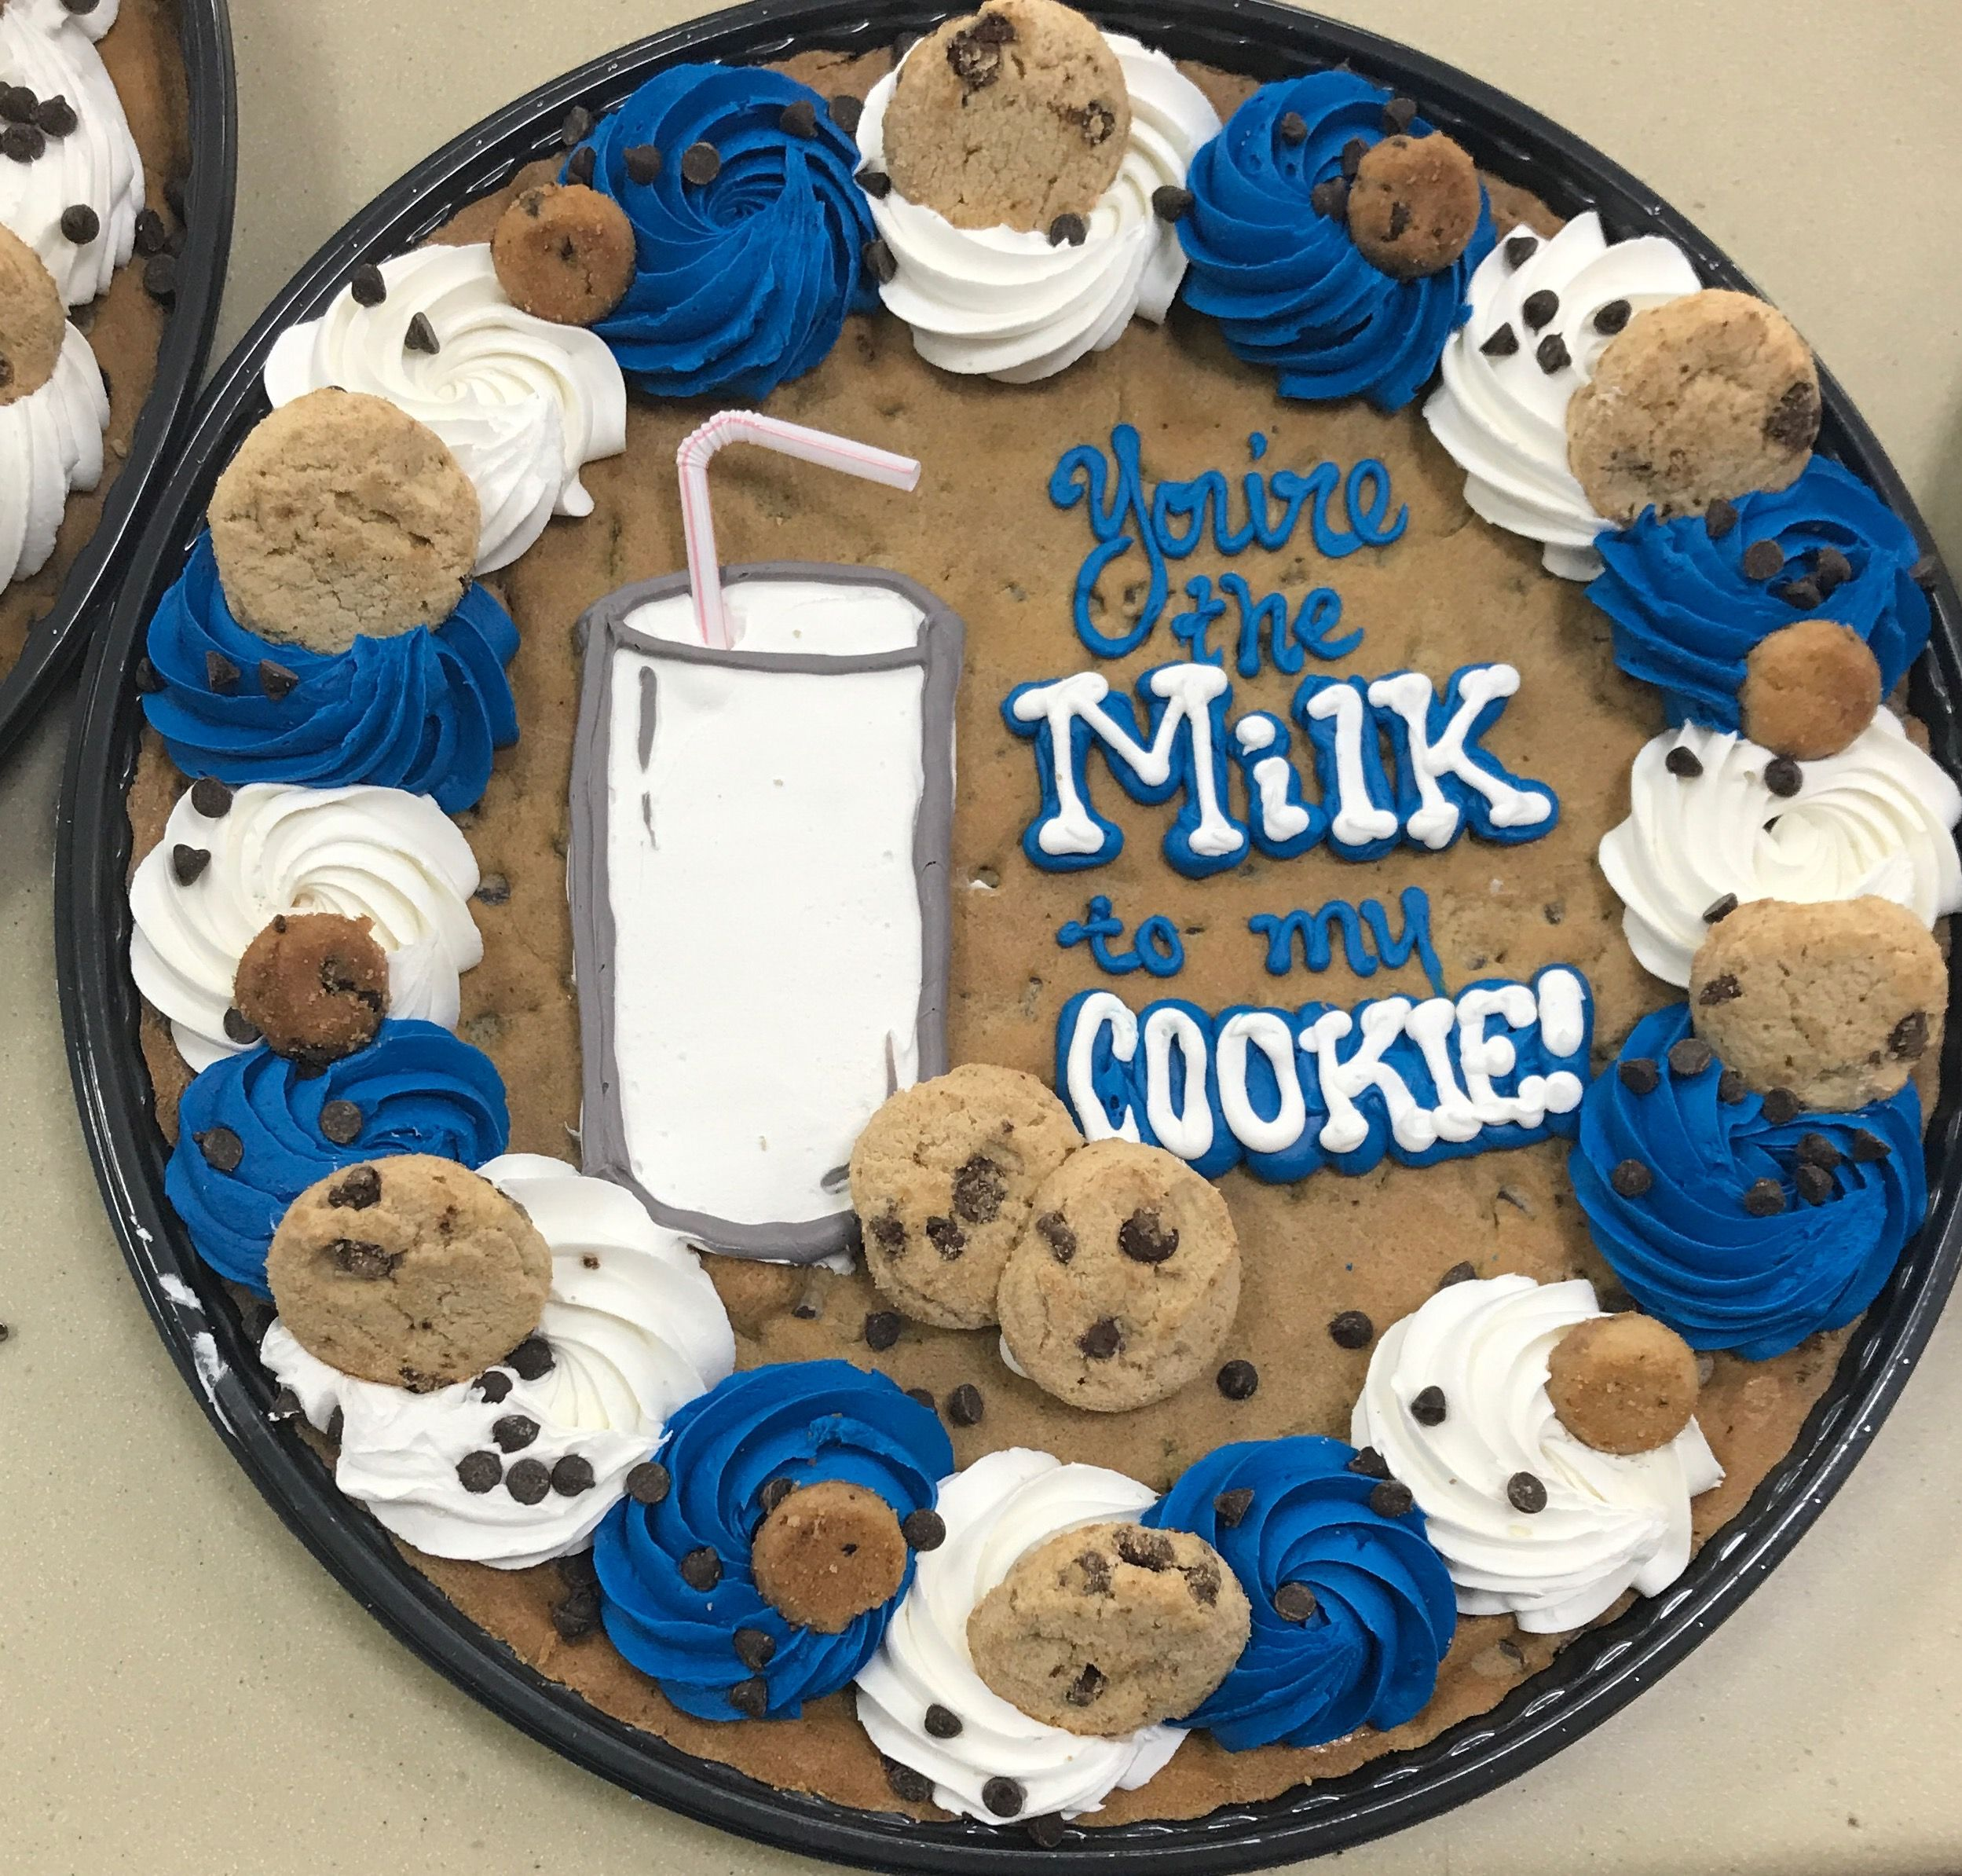 Pin by cat sanker on food alcohol cakes publix bakery